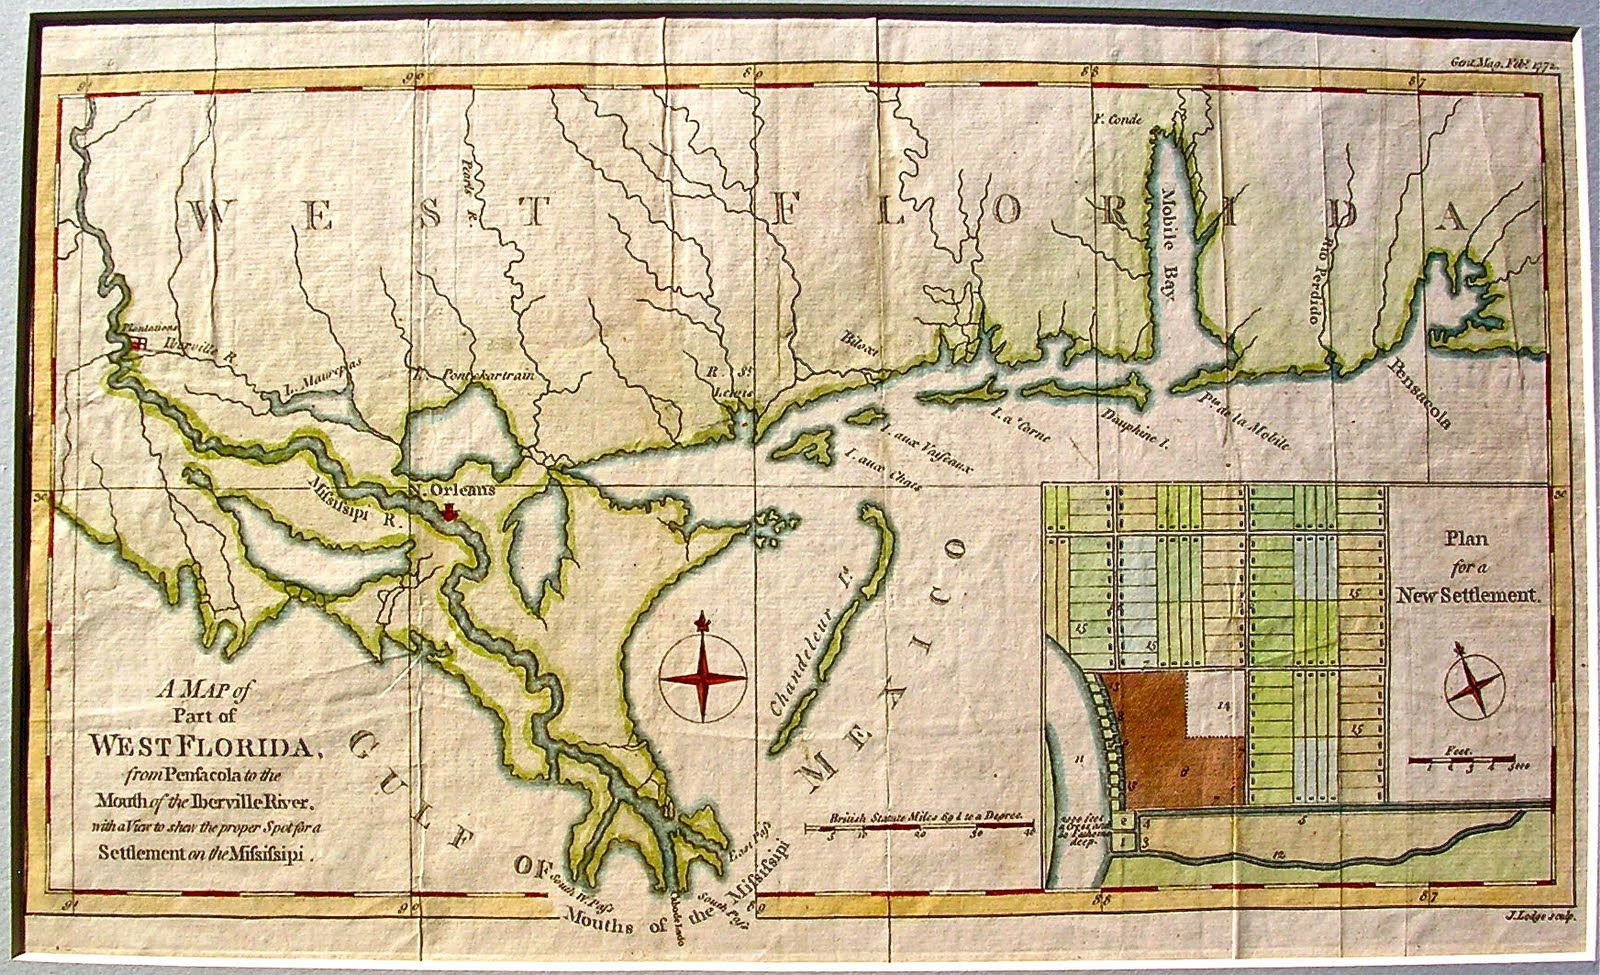 Lighthouse Books Abaa 1772 Hand Colored Map Of West Florida